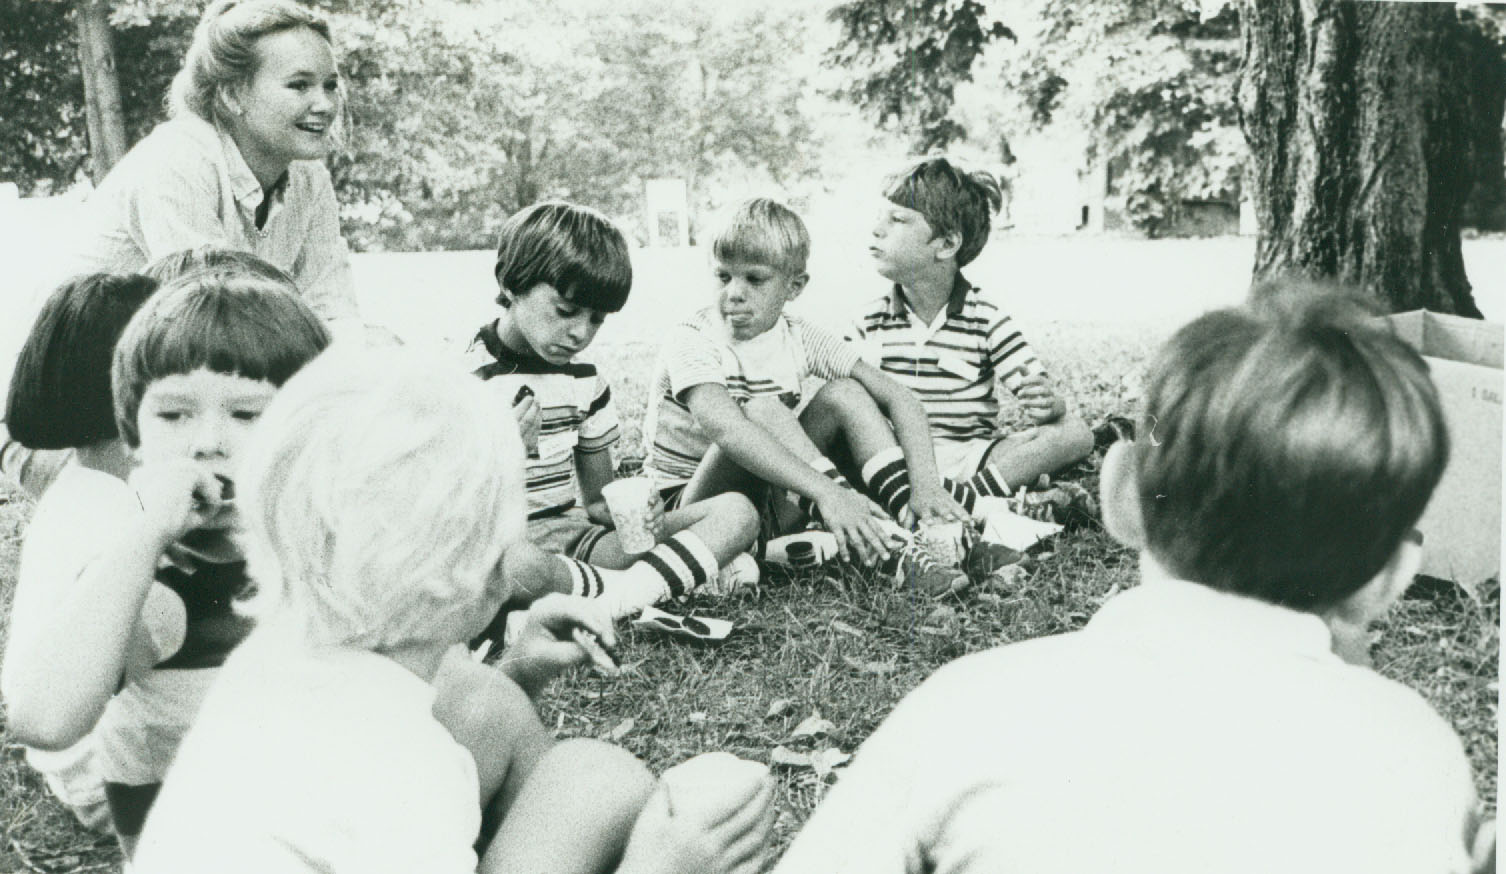 black and white image of children